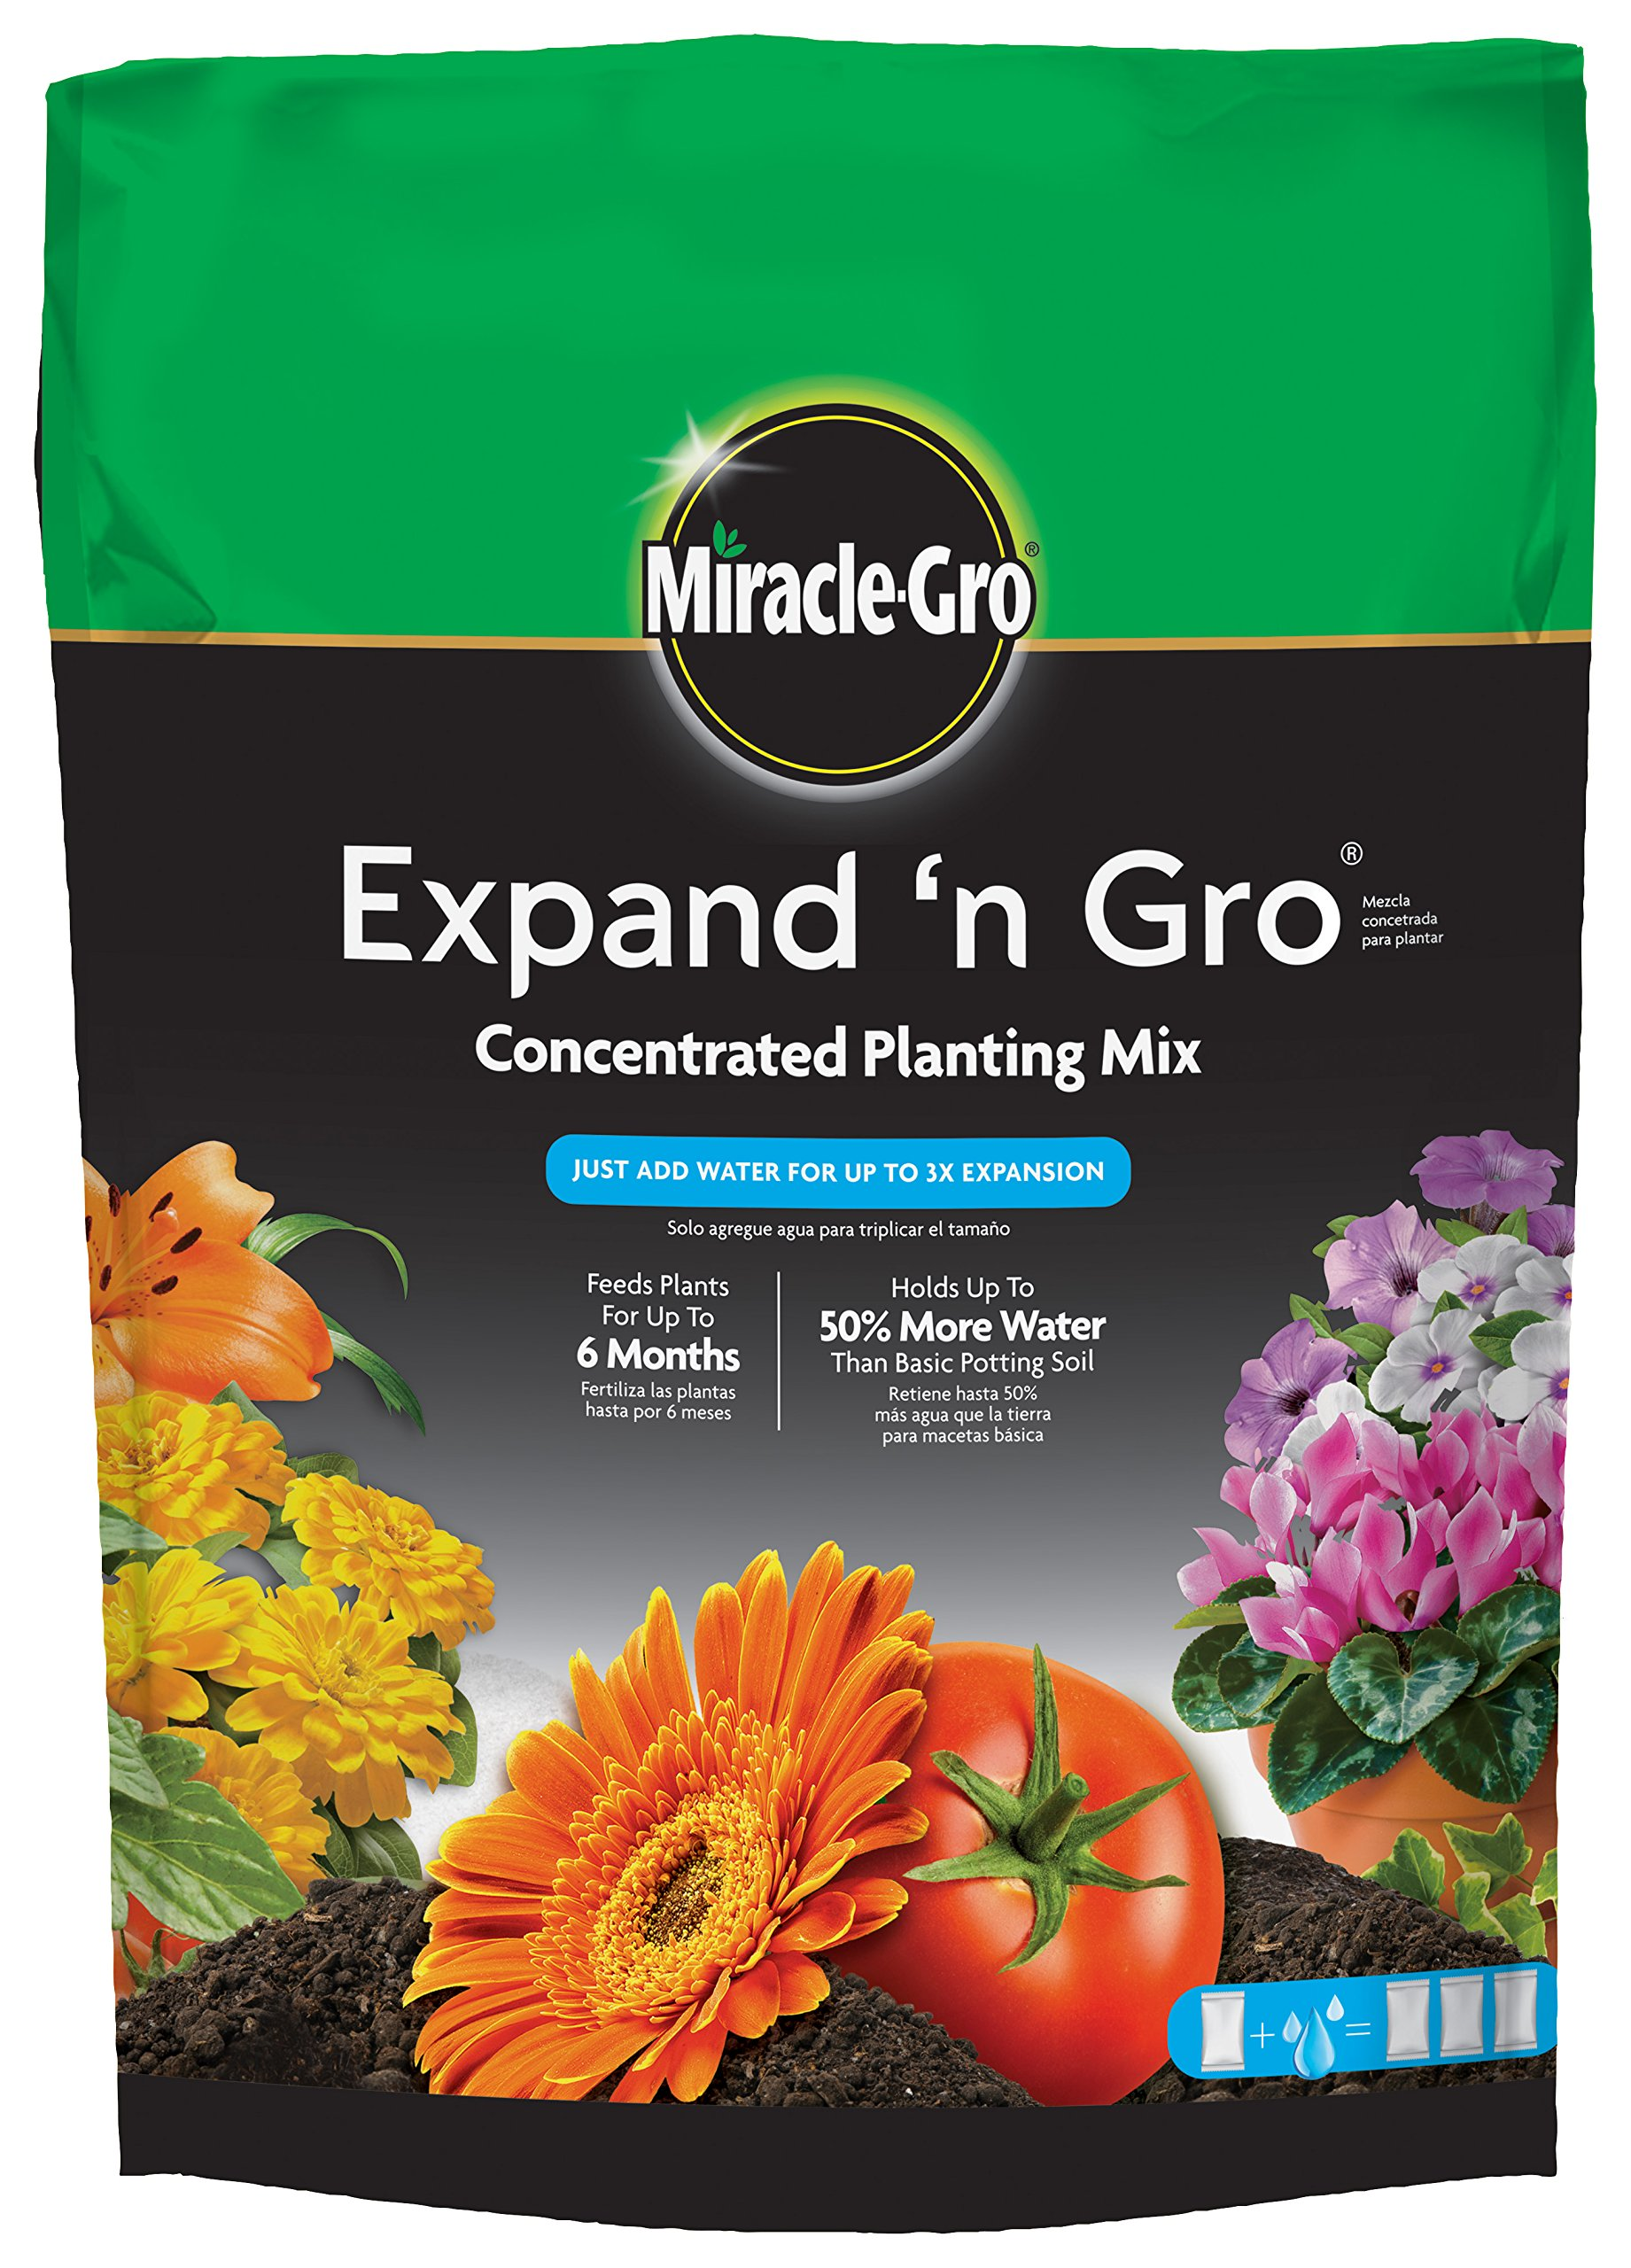 Miracle-Gro Expand 'n Gro Concentrated Planting Mix 0.33 cu ft by Miracle-Gro